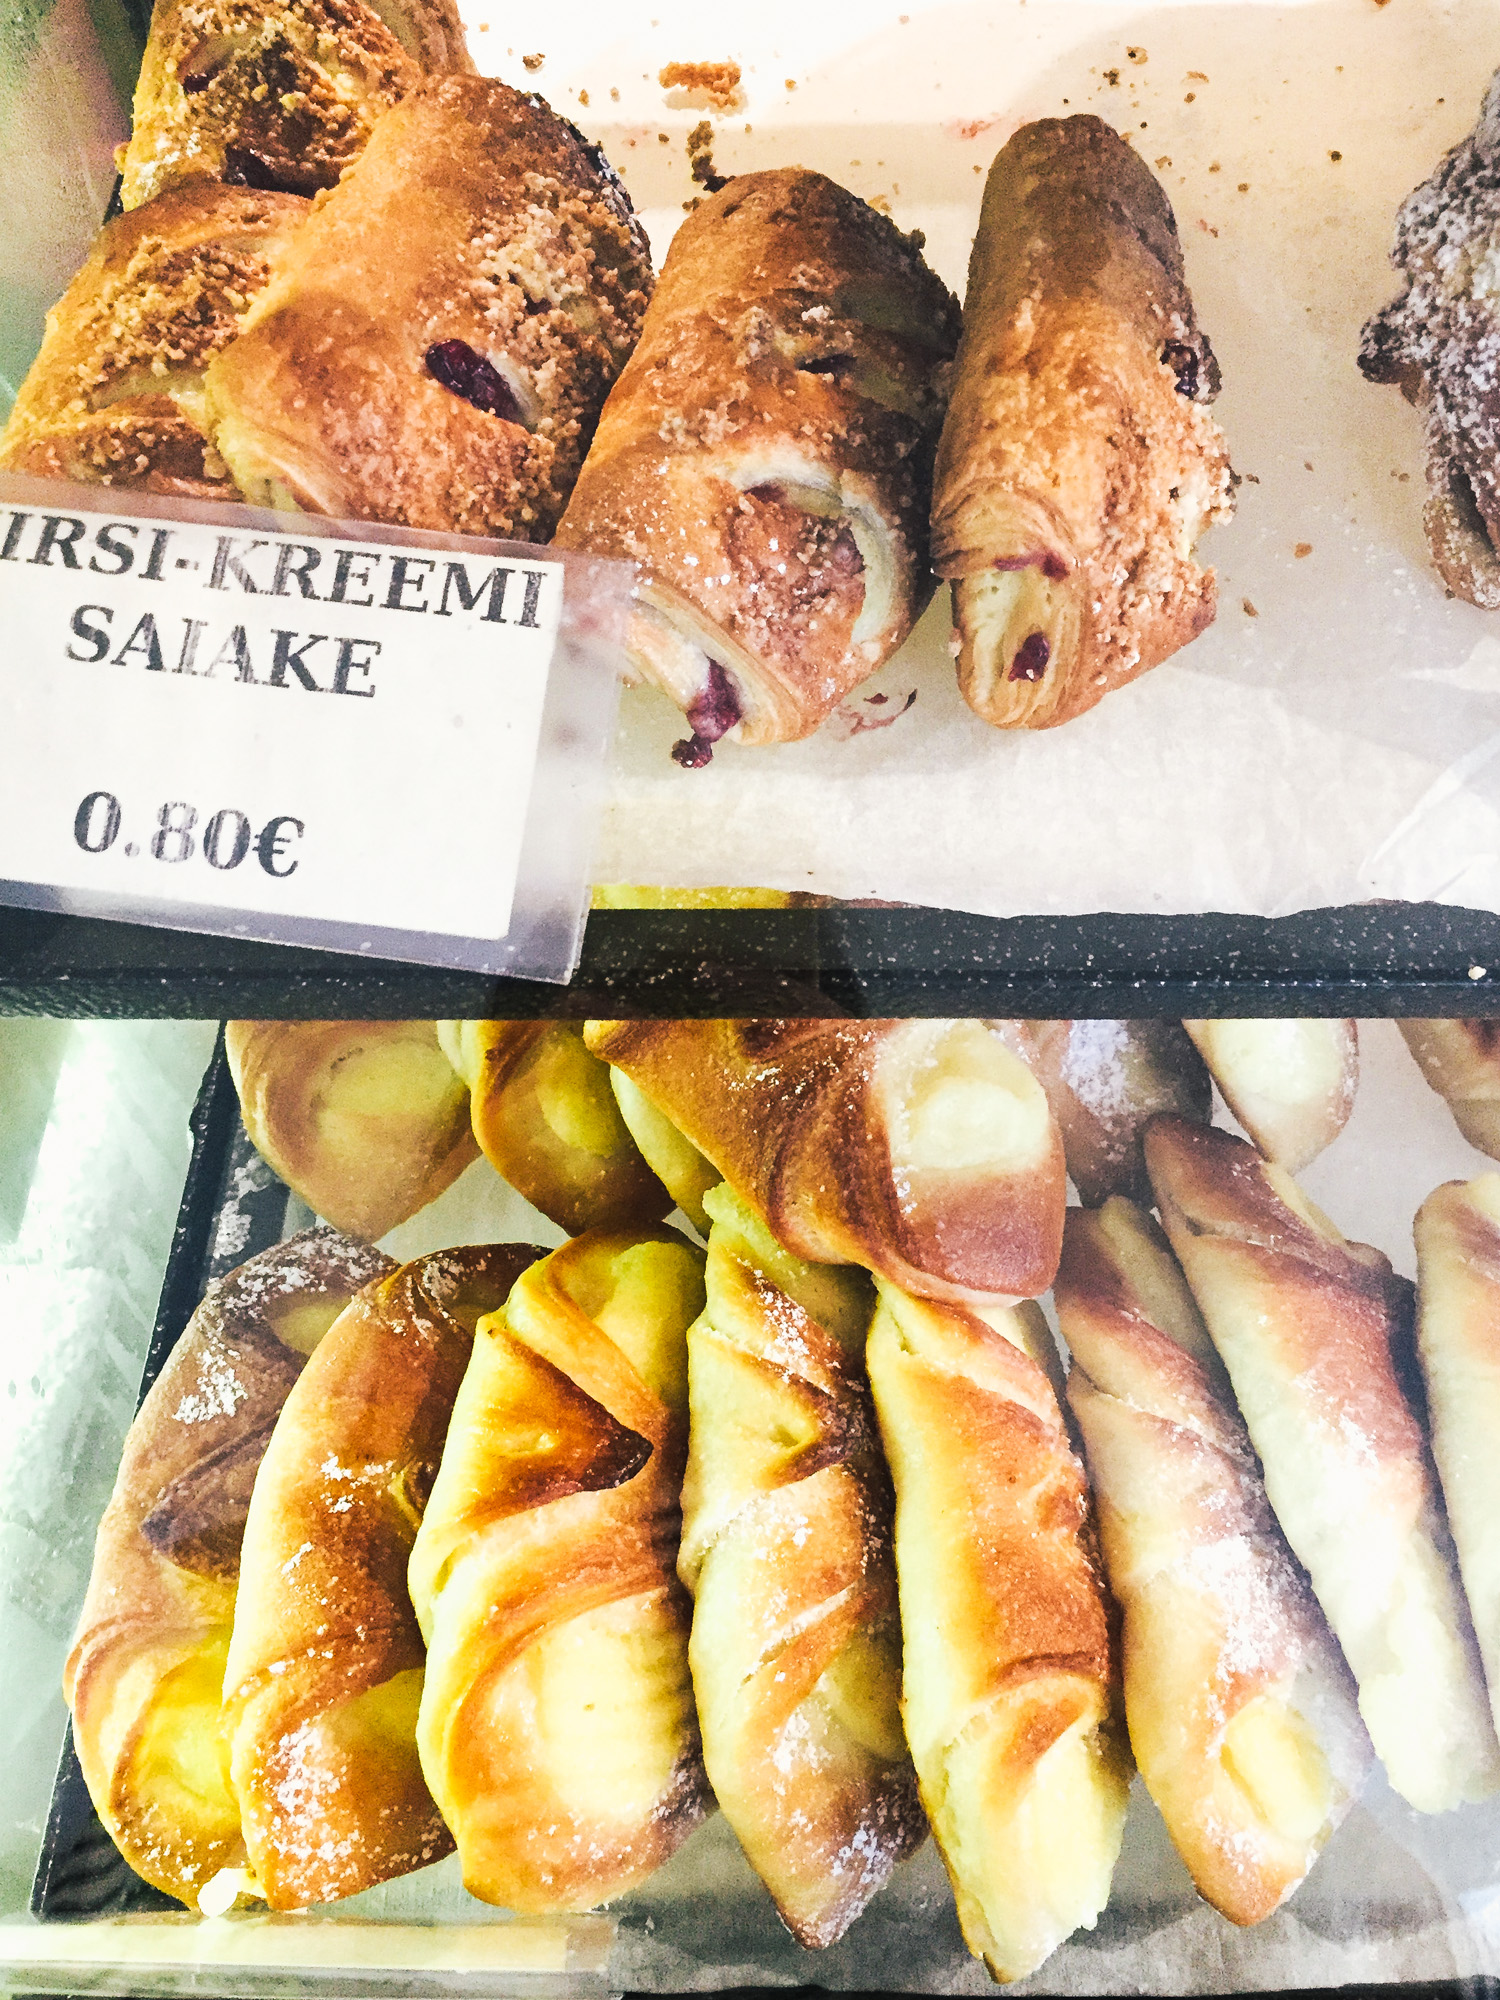 TALLINN FOOD GUIDE - 10 PLACES YOU MUST TRY - bakery